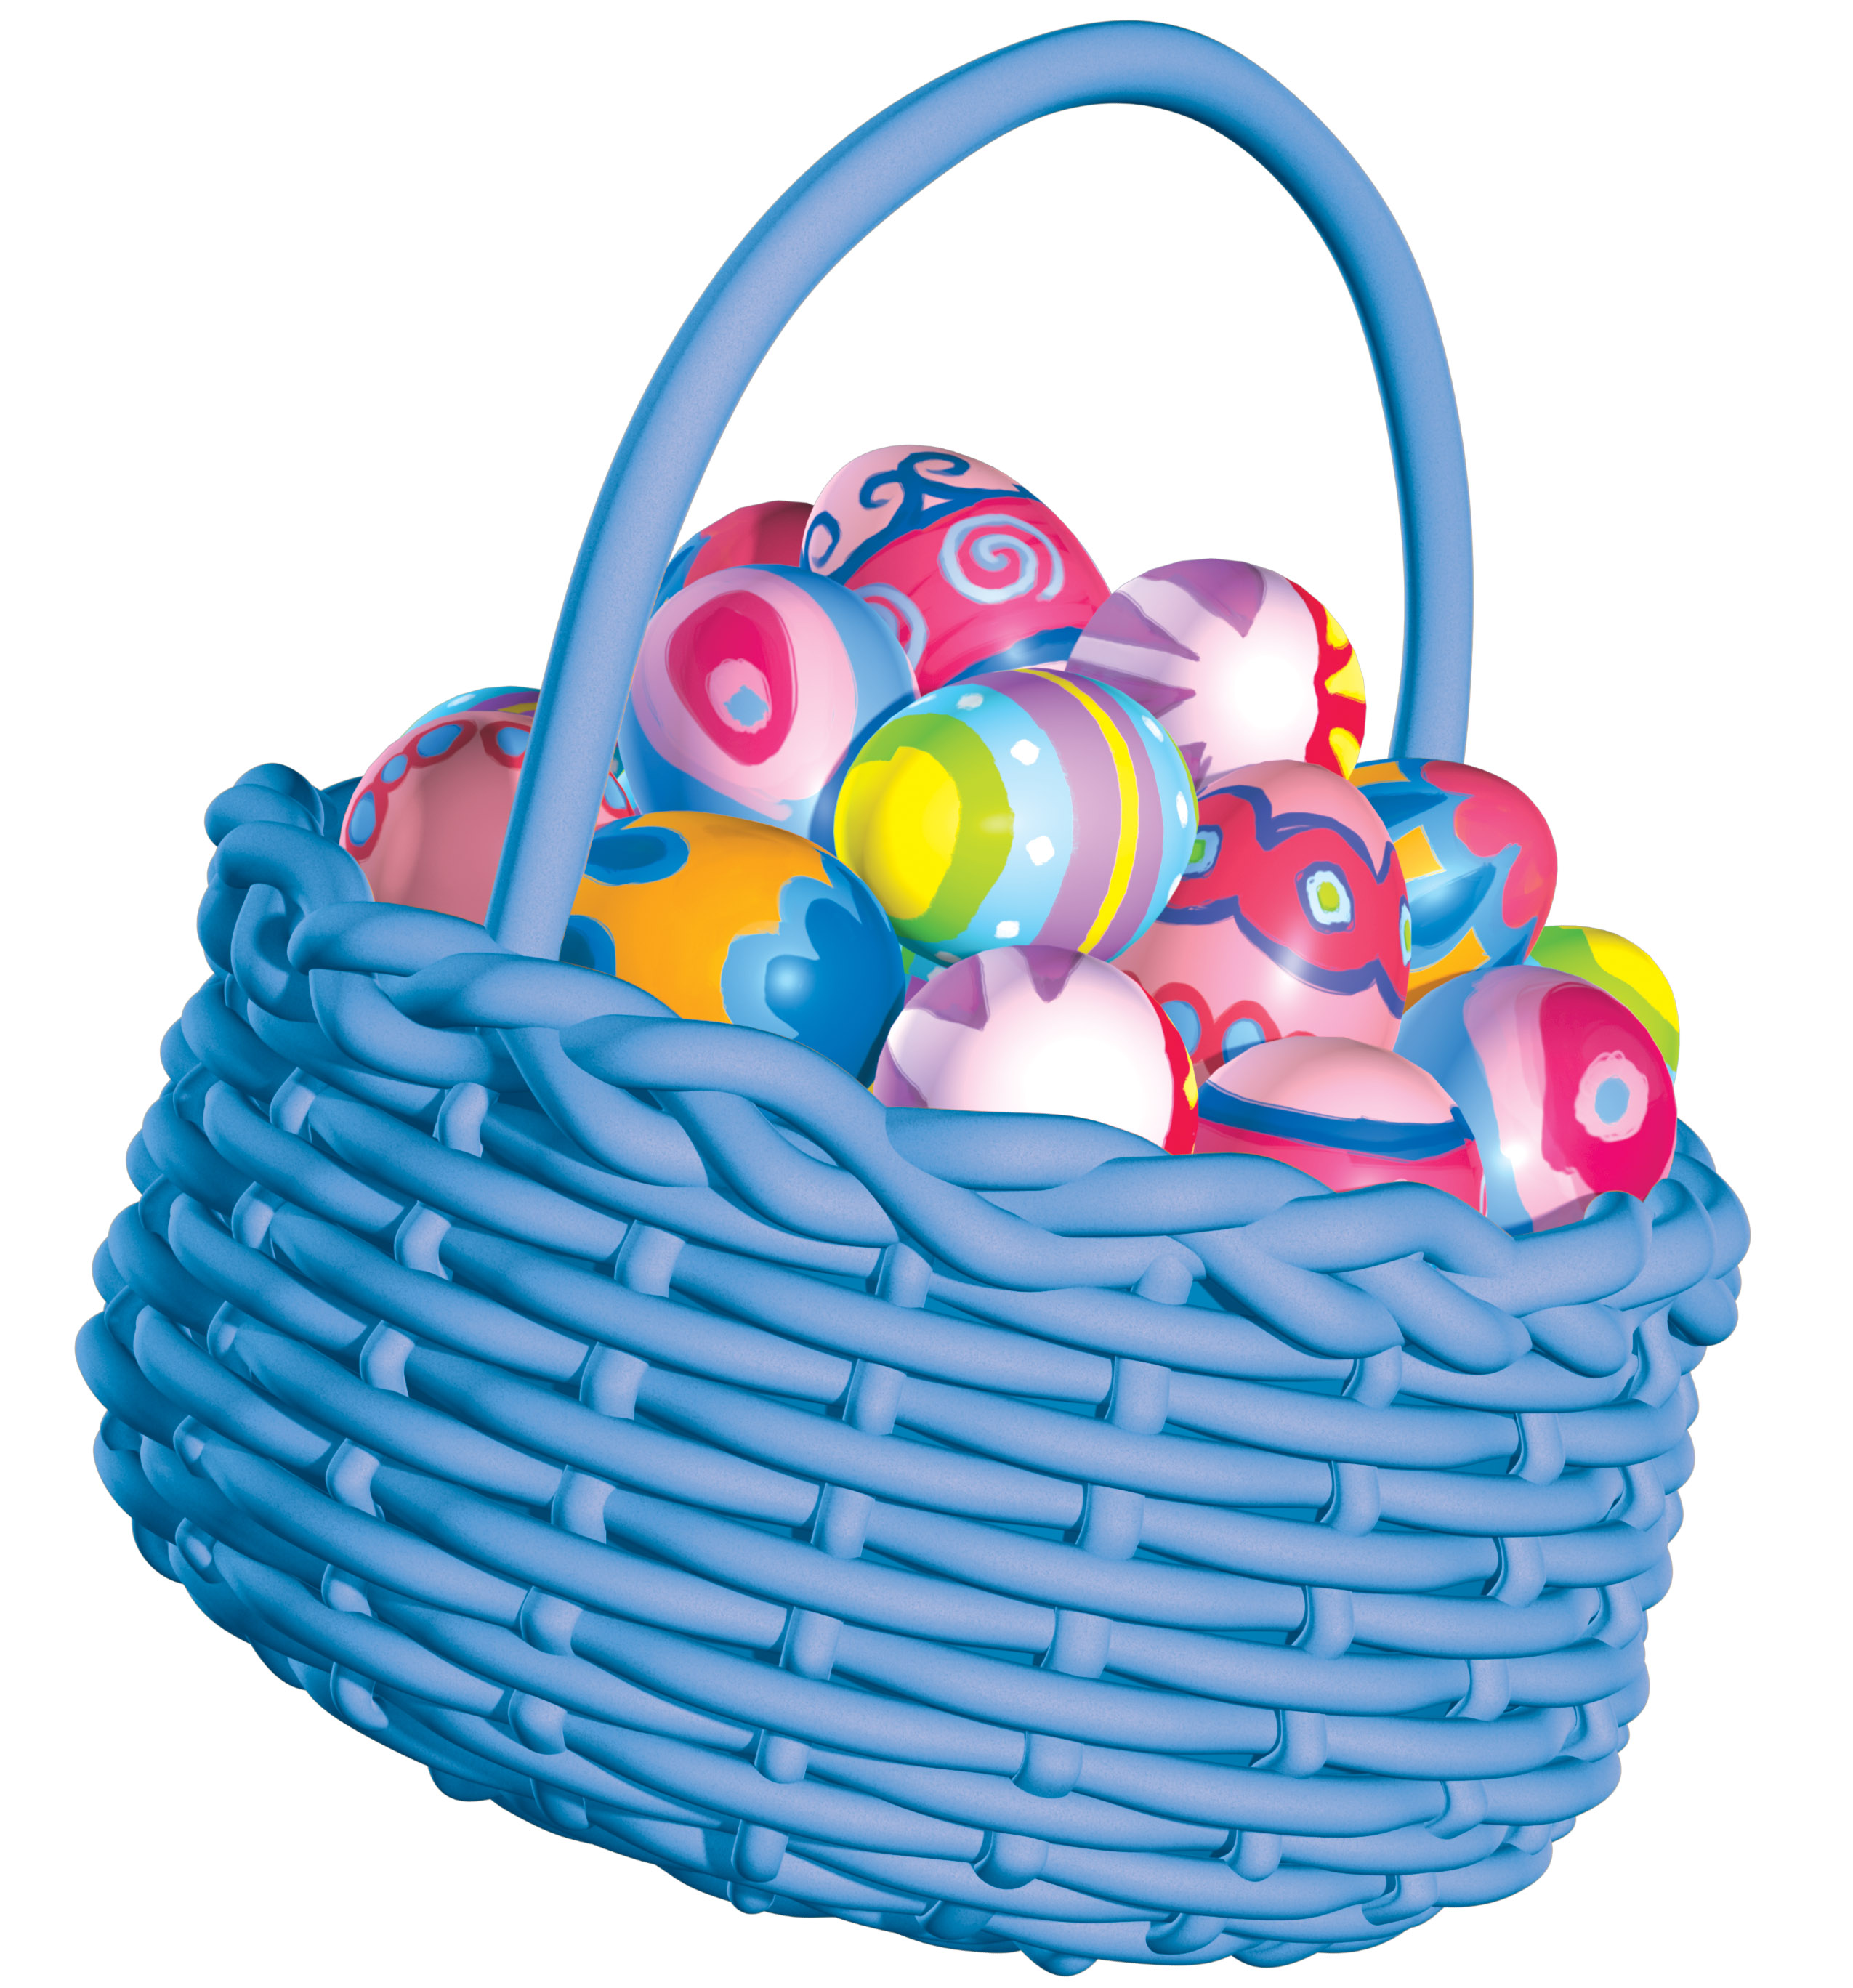 Free Easter Basket, Download Free Clip Art, Free Clip Art on.